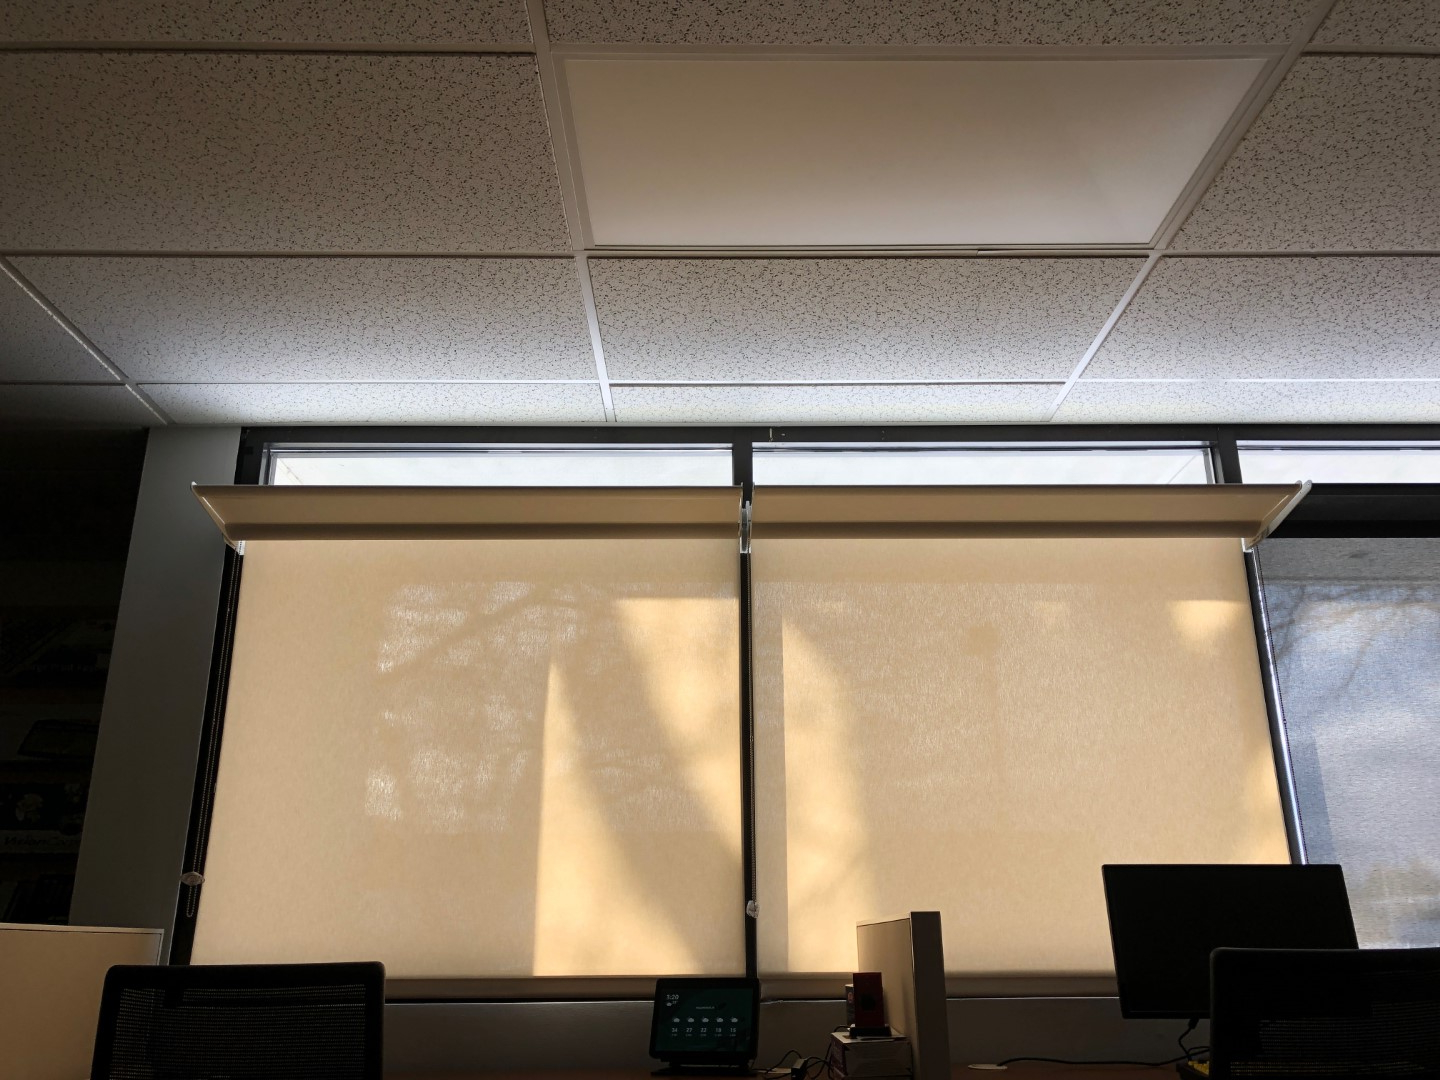 Office window  with shades drawn and lightshelf open. Daylight spreads across the ceiling.